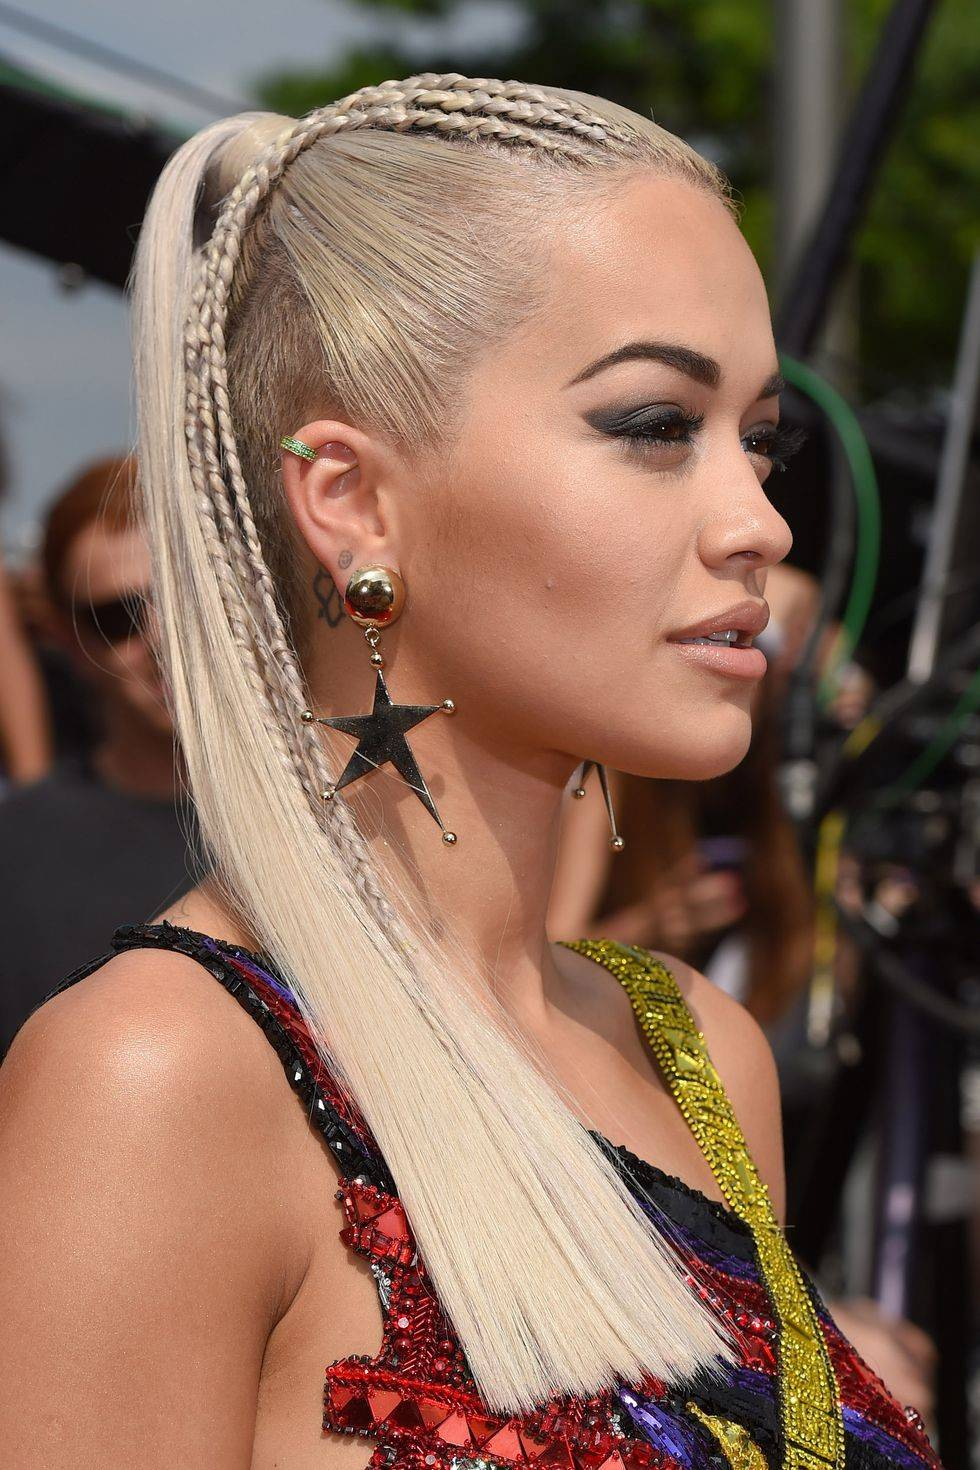 Rita Ora with a high ponytail and braids